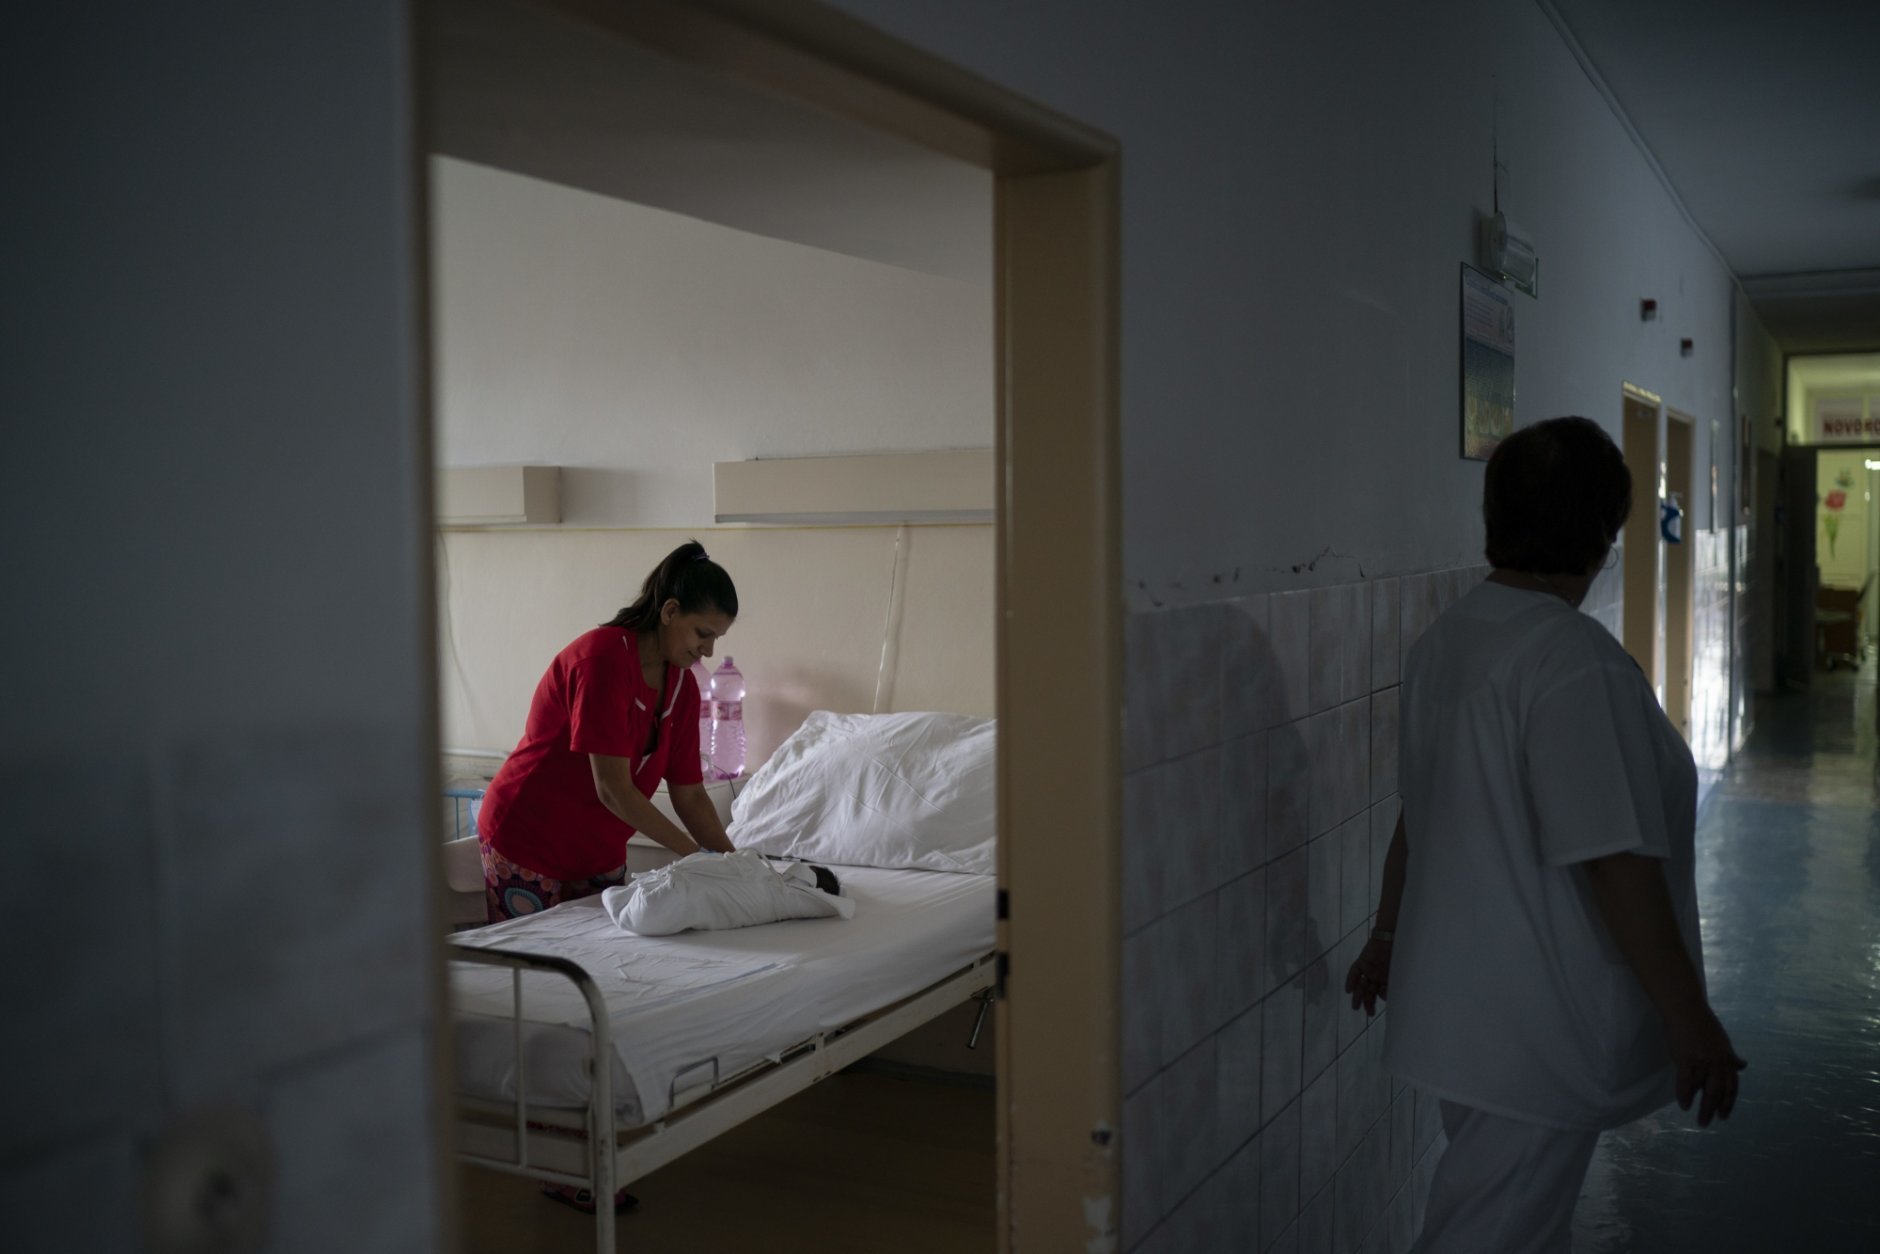 In this Nov. 15, 2018, photo, a nurse stands outside the room as Paulina Balazova prepares the clothes of her newborn baby at a hospital in Trebisov, Slovakia. An investigation by The Associated Press has found that women and their newborns in Slovakia are routinely, unjustifiably and illegally detained in hospitals across the European Union country. (AP Photo/Felipe Dana)